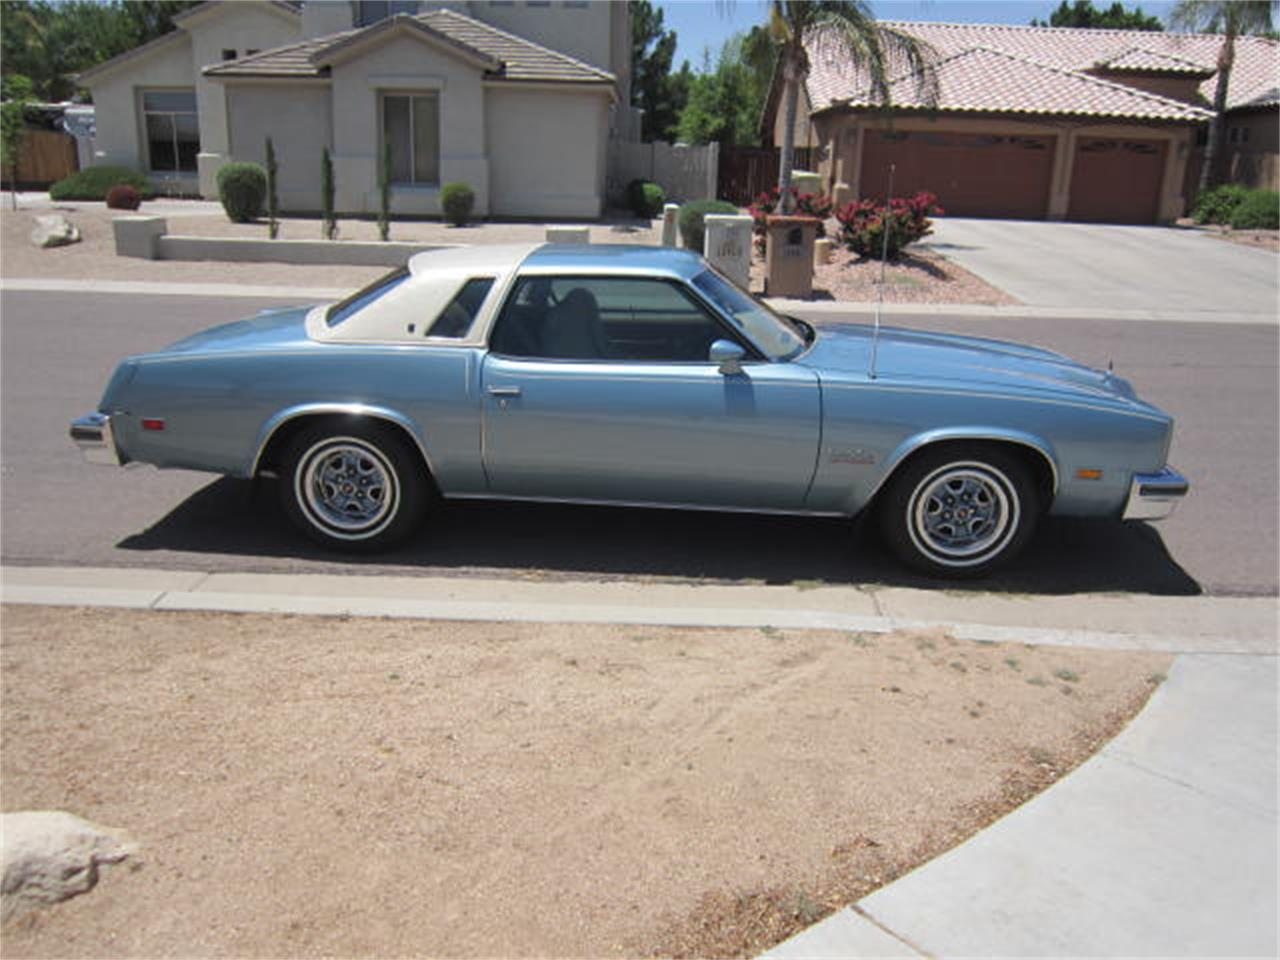 Large Picture of '77 Oldsmobile Cutlass located in Arizona - $15,000.00 Offered by a Private Seller - DISY